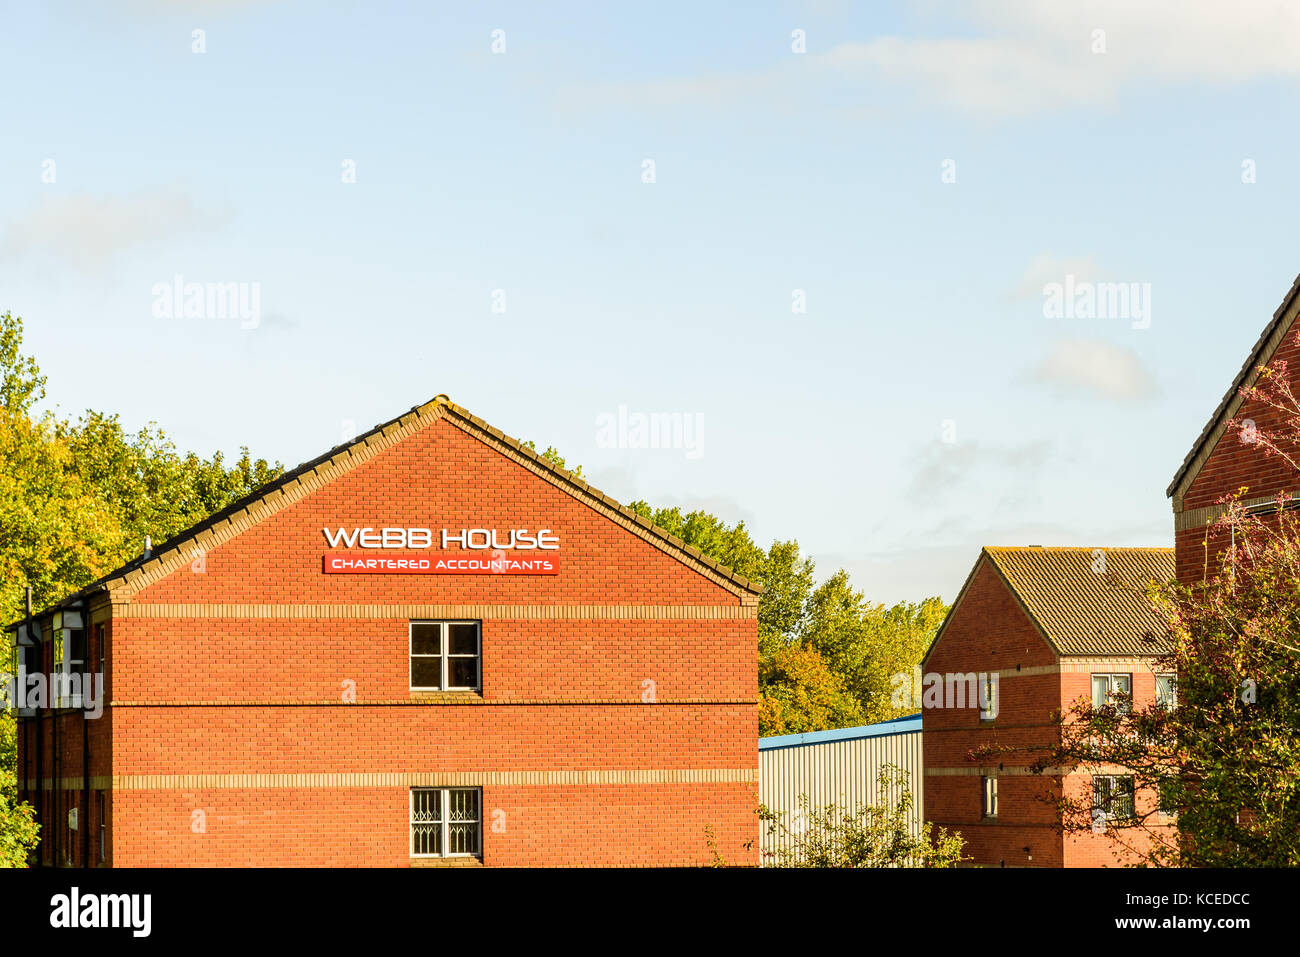 Northampton UK October 3, 2017: Webb House Chartered Accountants logo sign stand Northampton industrial estate - Stock Image